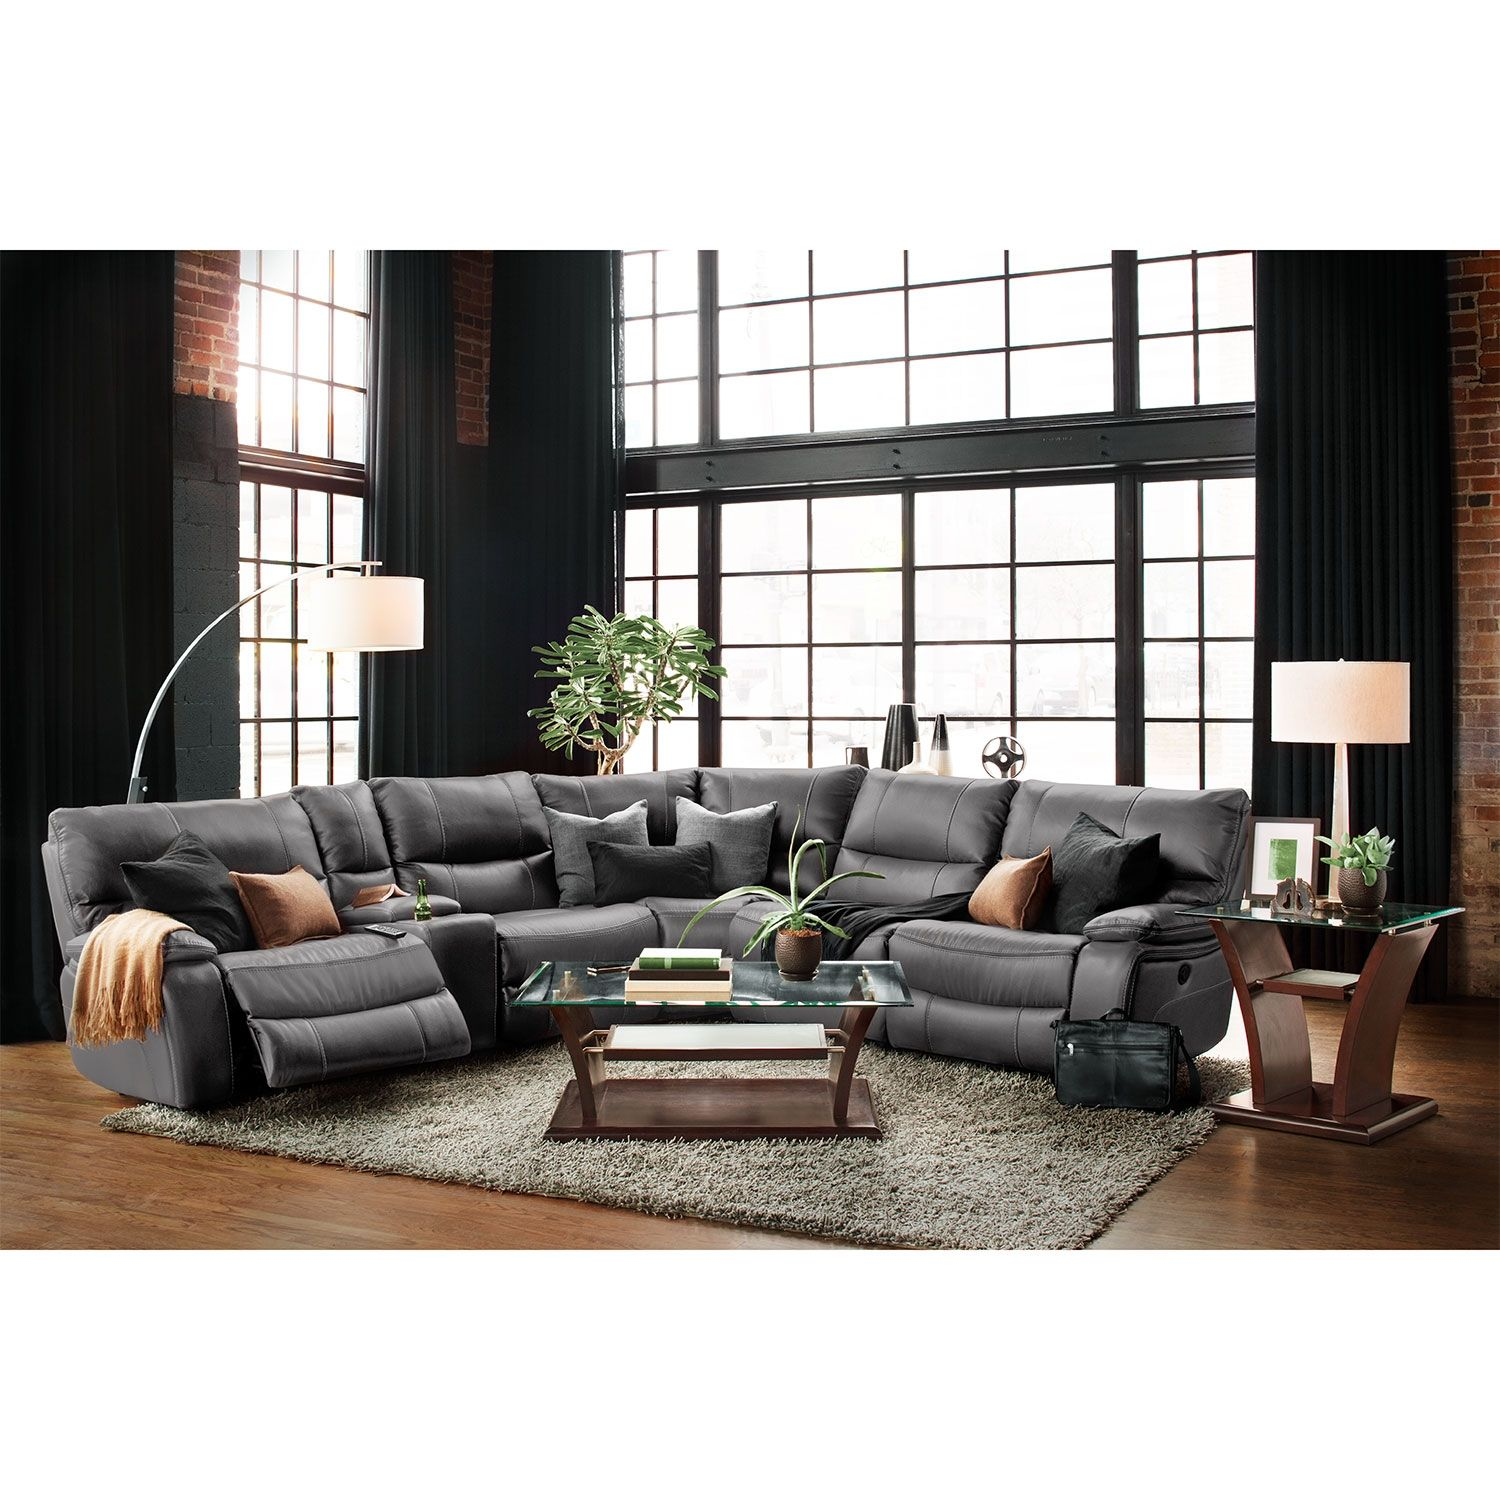 American City Furniture Near Me: Orlando 6-Piece Power Reclining Sectional With 3 Reclining